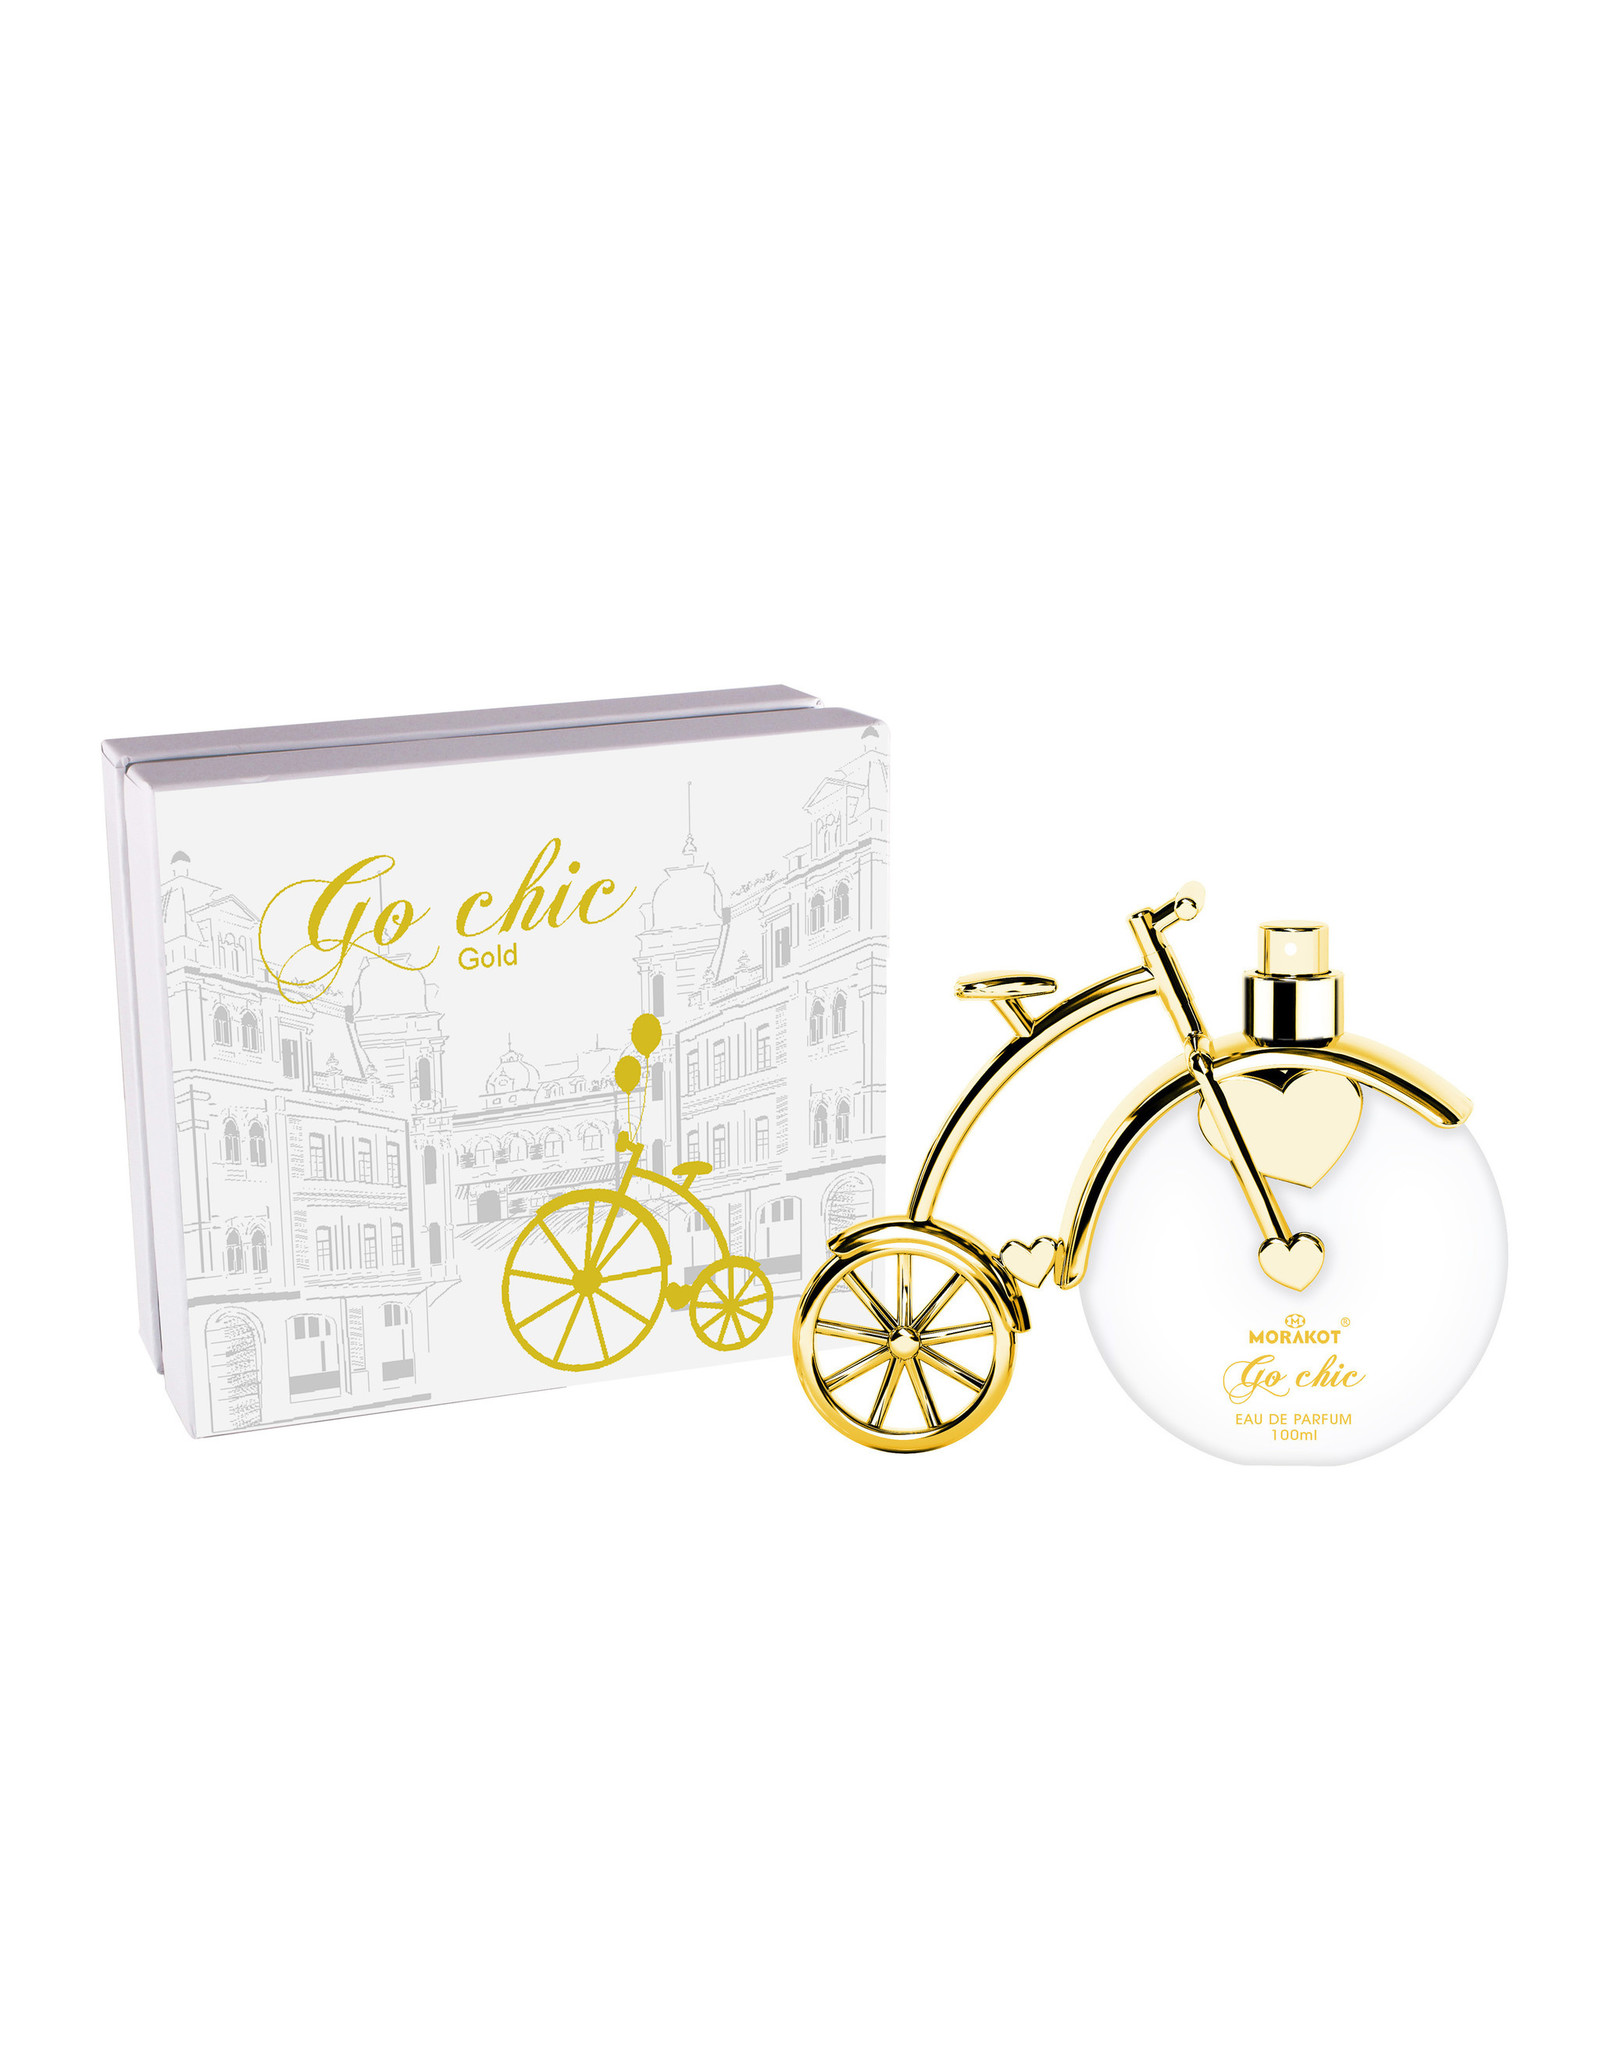 Tiverton Go Chic gold EDP 100 ml